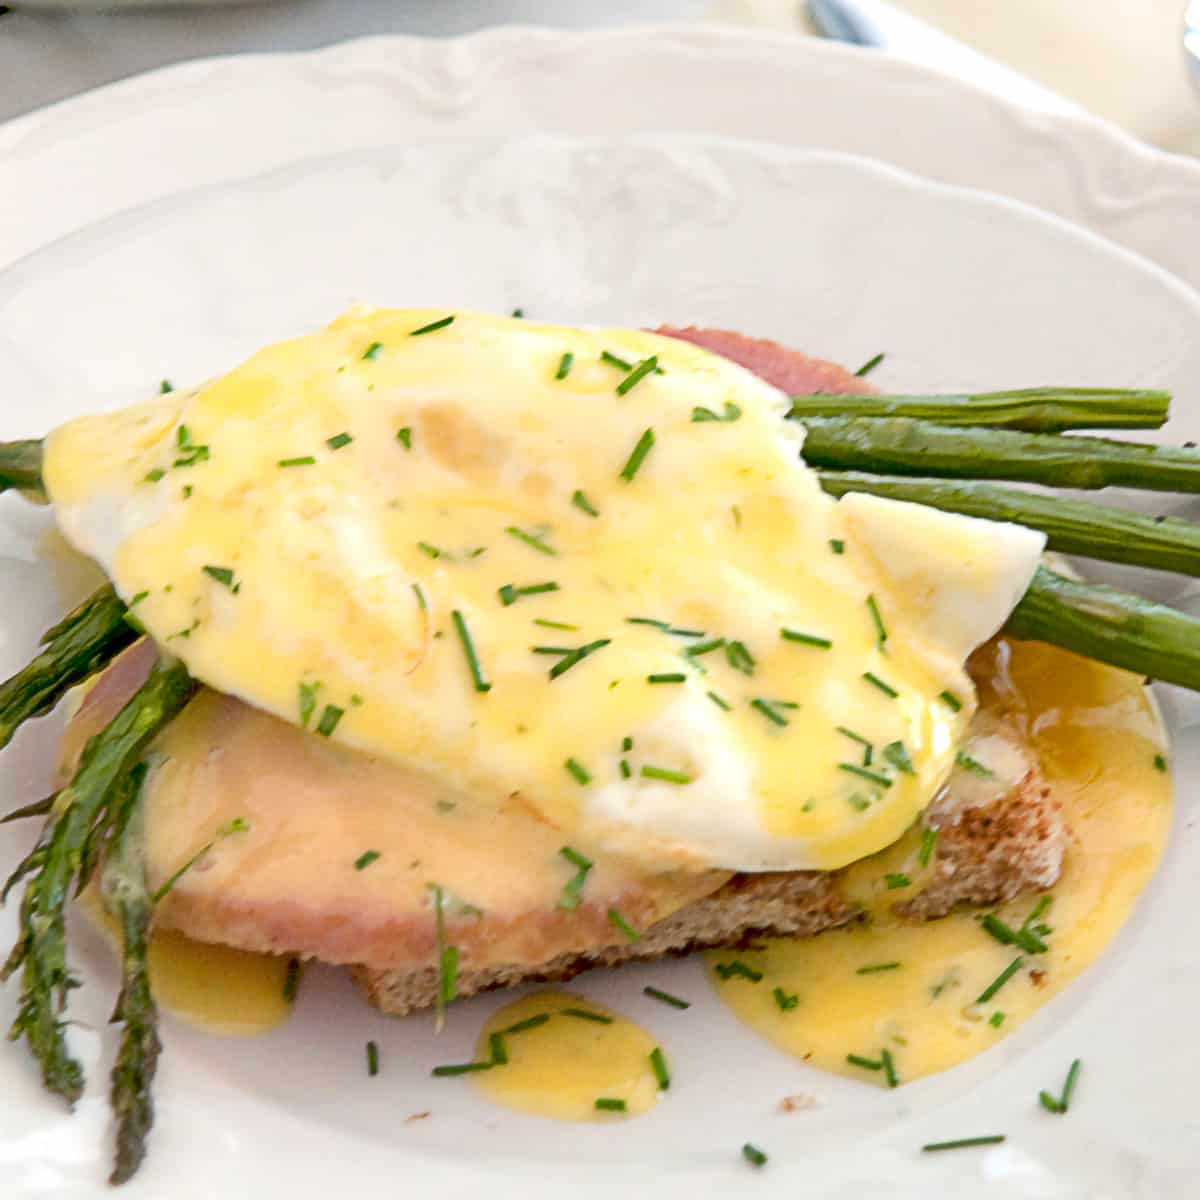 Country eggs benedict on a white serving plate.